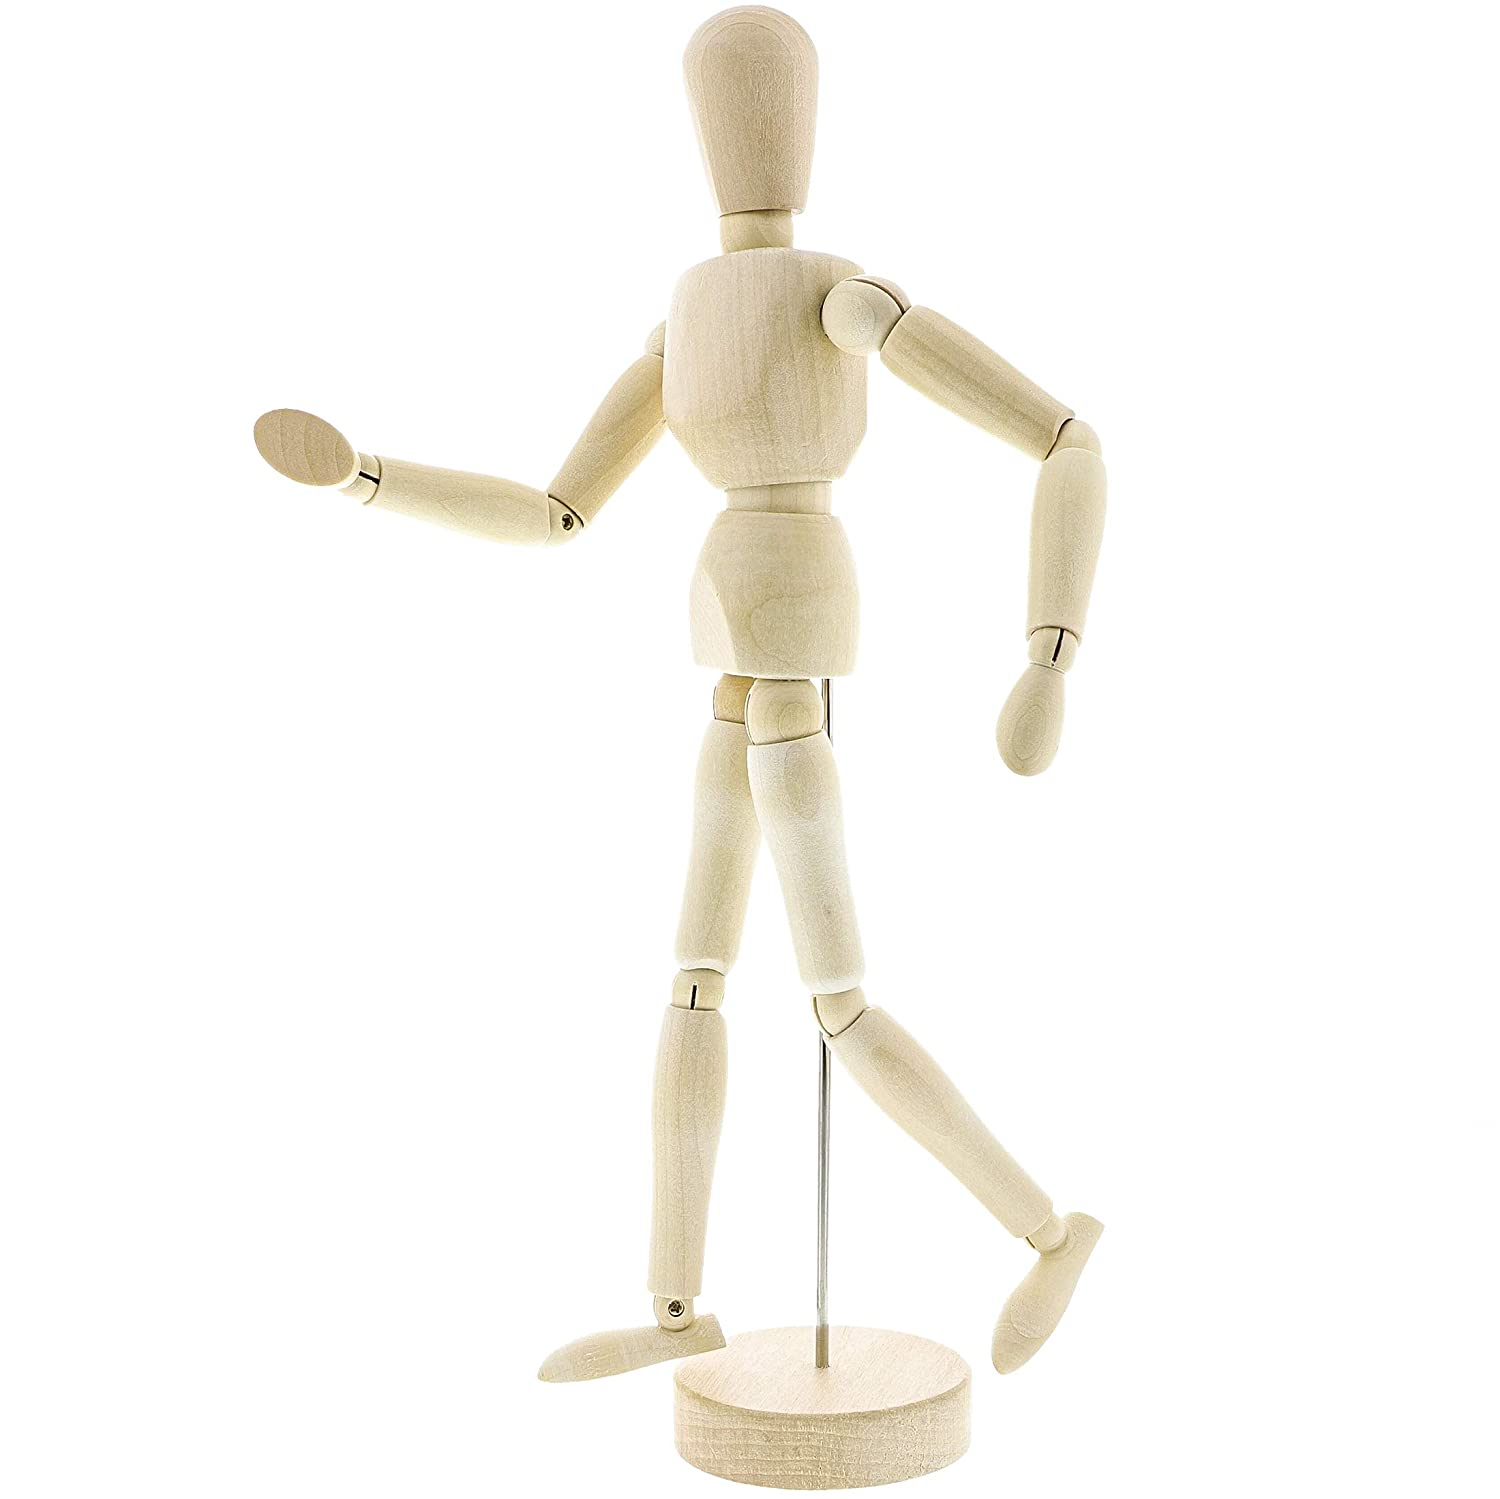 Amazon com le juvo 13 inch jointed posable wooden manikin figure model for artist drawing and sketching